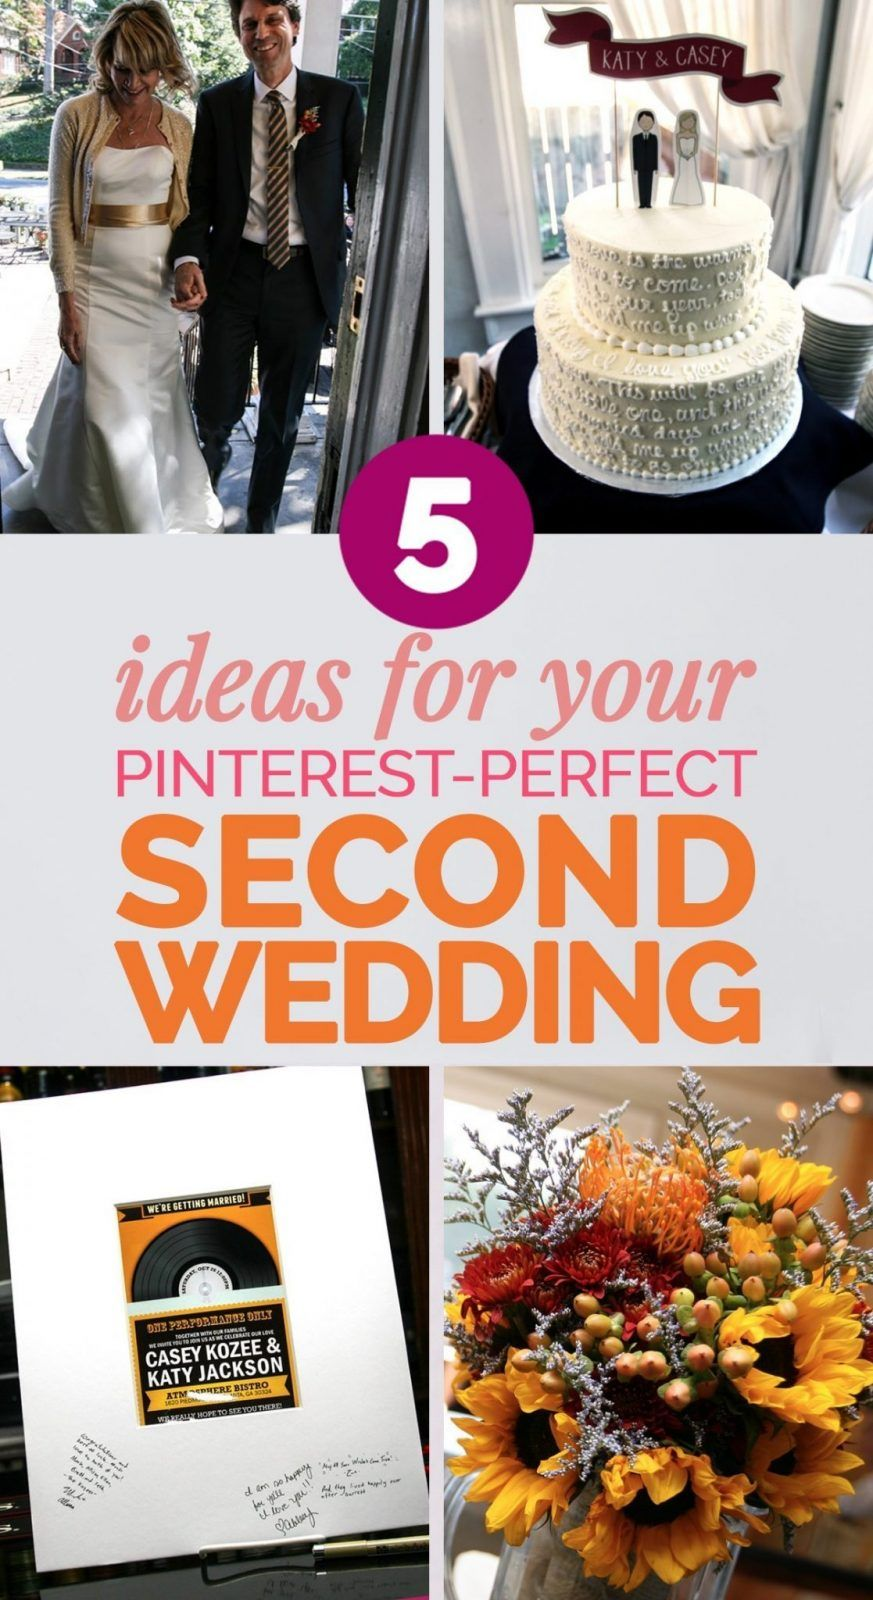 How To Plan The Perfect Second Wedding Over 40 Wedding Ideas For Second Marriage Second Weddings Wedding Dresses Second Marriage